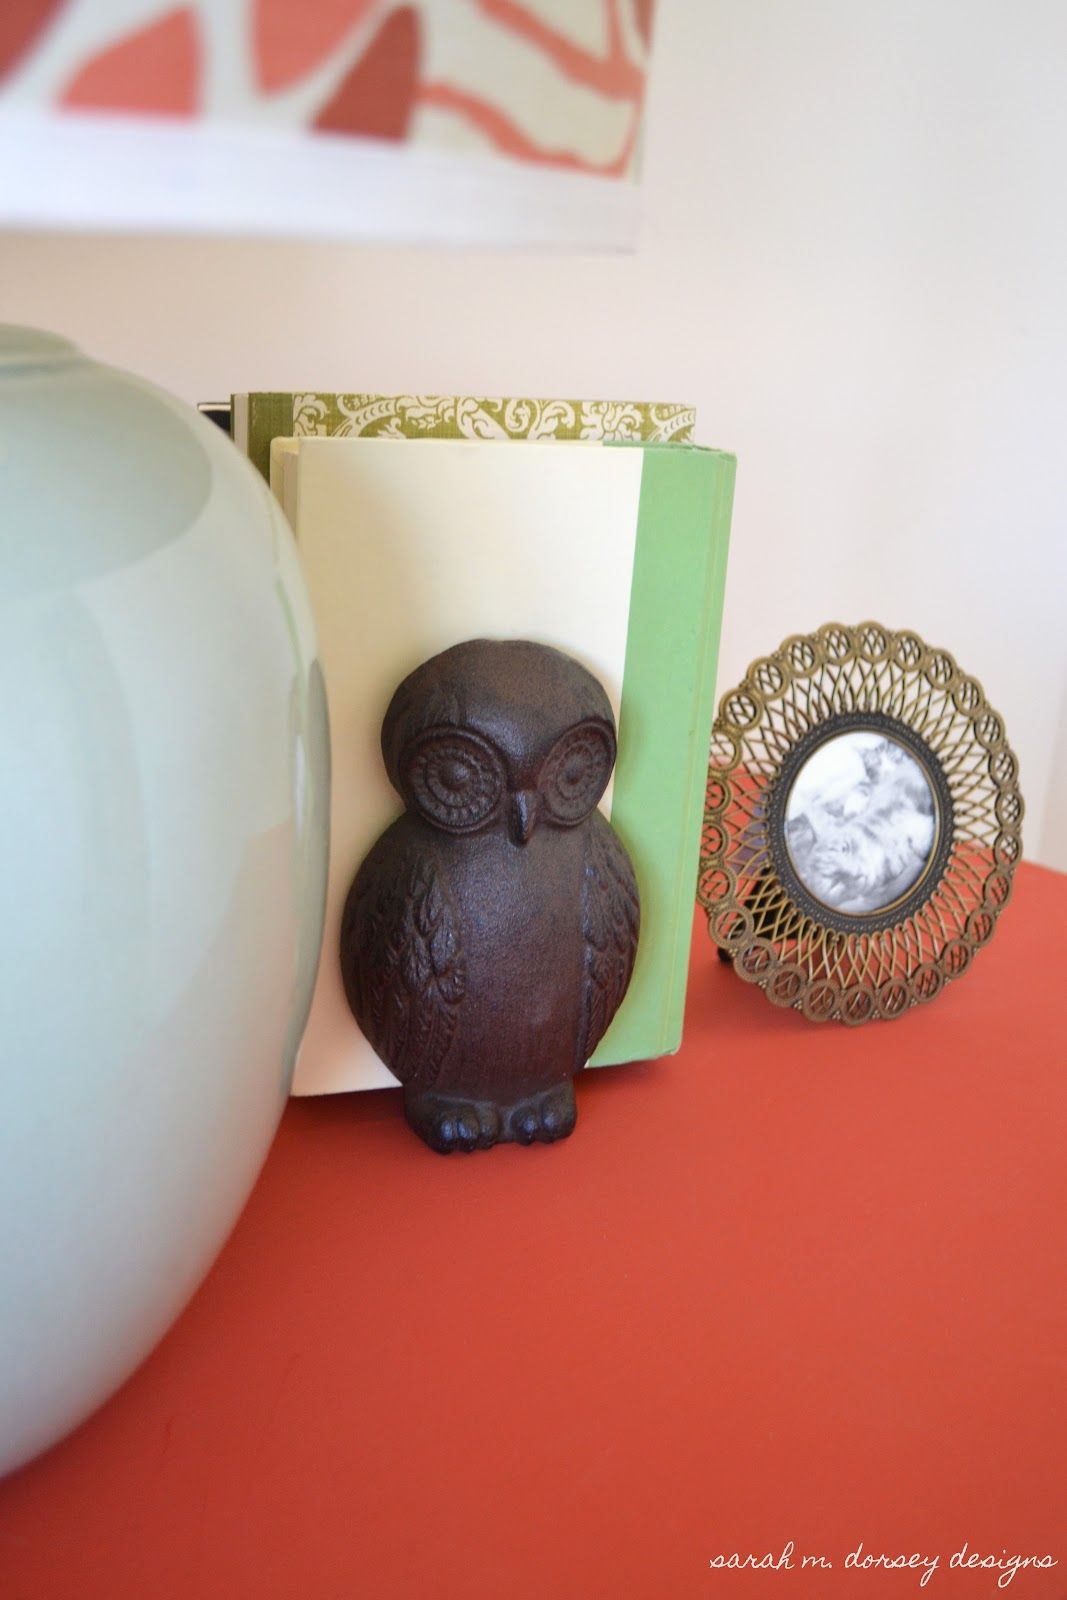 owl bookend guest bedroom update bedroom updates guest on best bed designs ideas for kids room new questions concerning ideas and bed designs id=97322